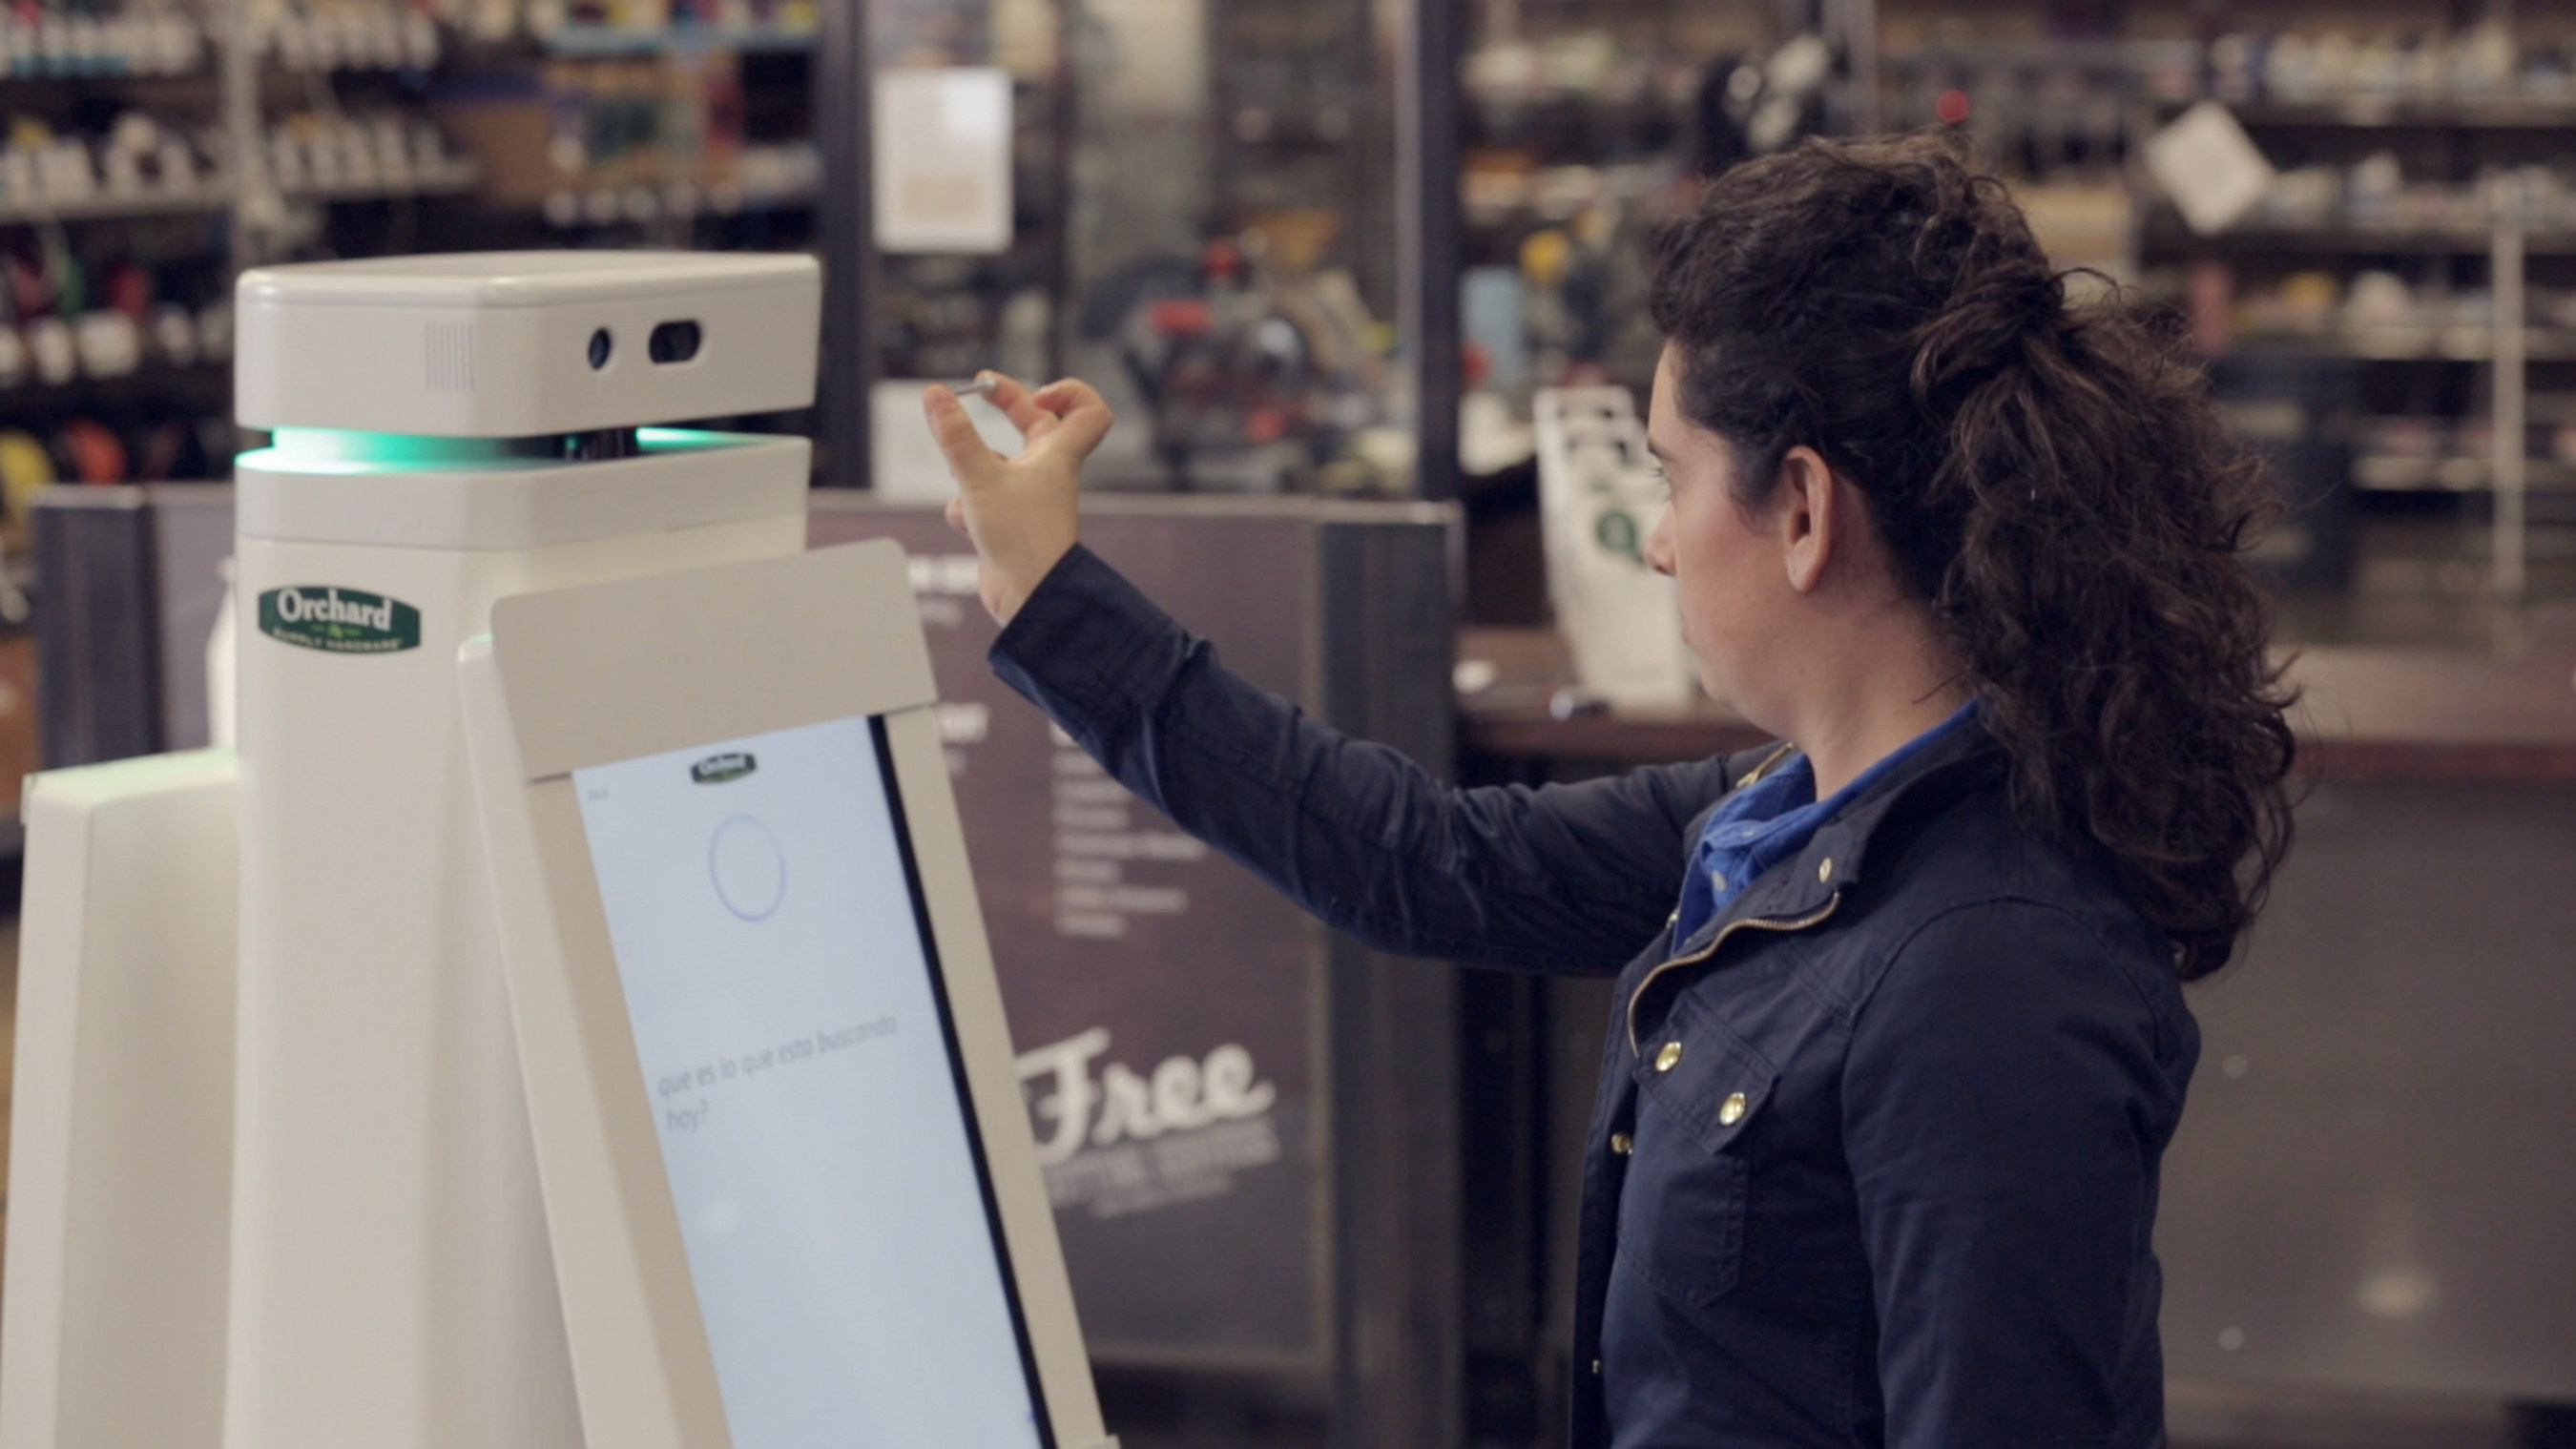 The OSHbot incorporates scanning technology first developed for the Lowe's Holoroom home improvement simulator. For example, a customer may bring in a spare part and scan the object using OSHbot's 3D sensing camera. After scanning and identifying the object, OSHbot will provide product information to the customer and help guide them to its location on store shelves.